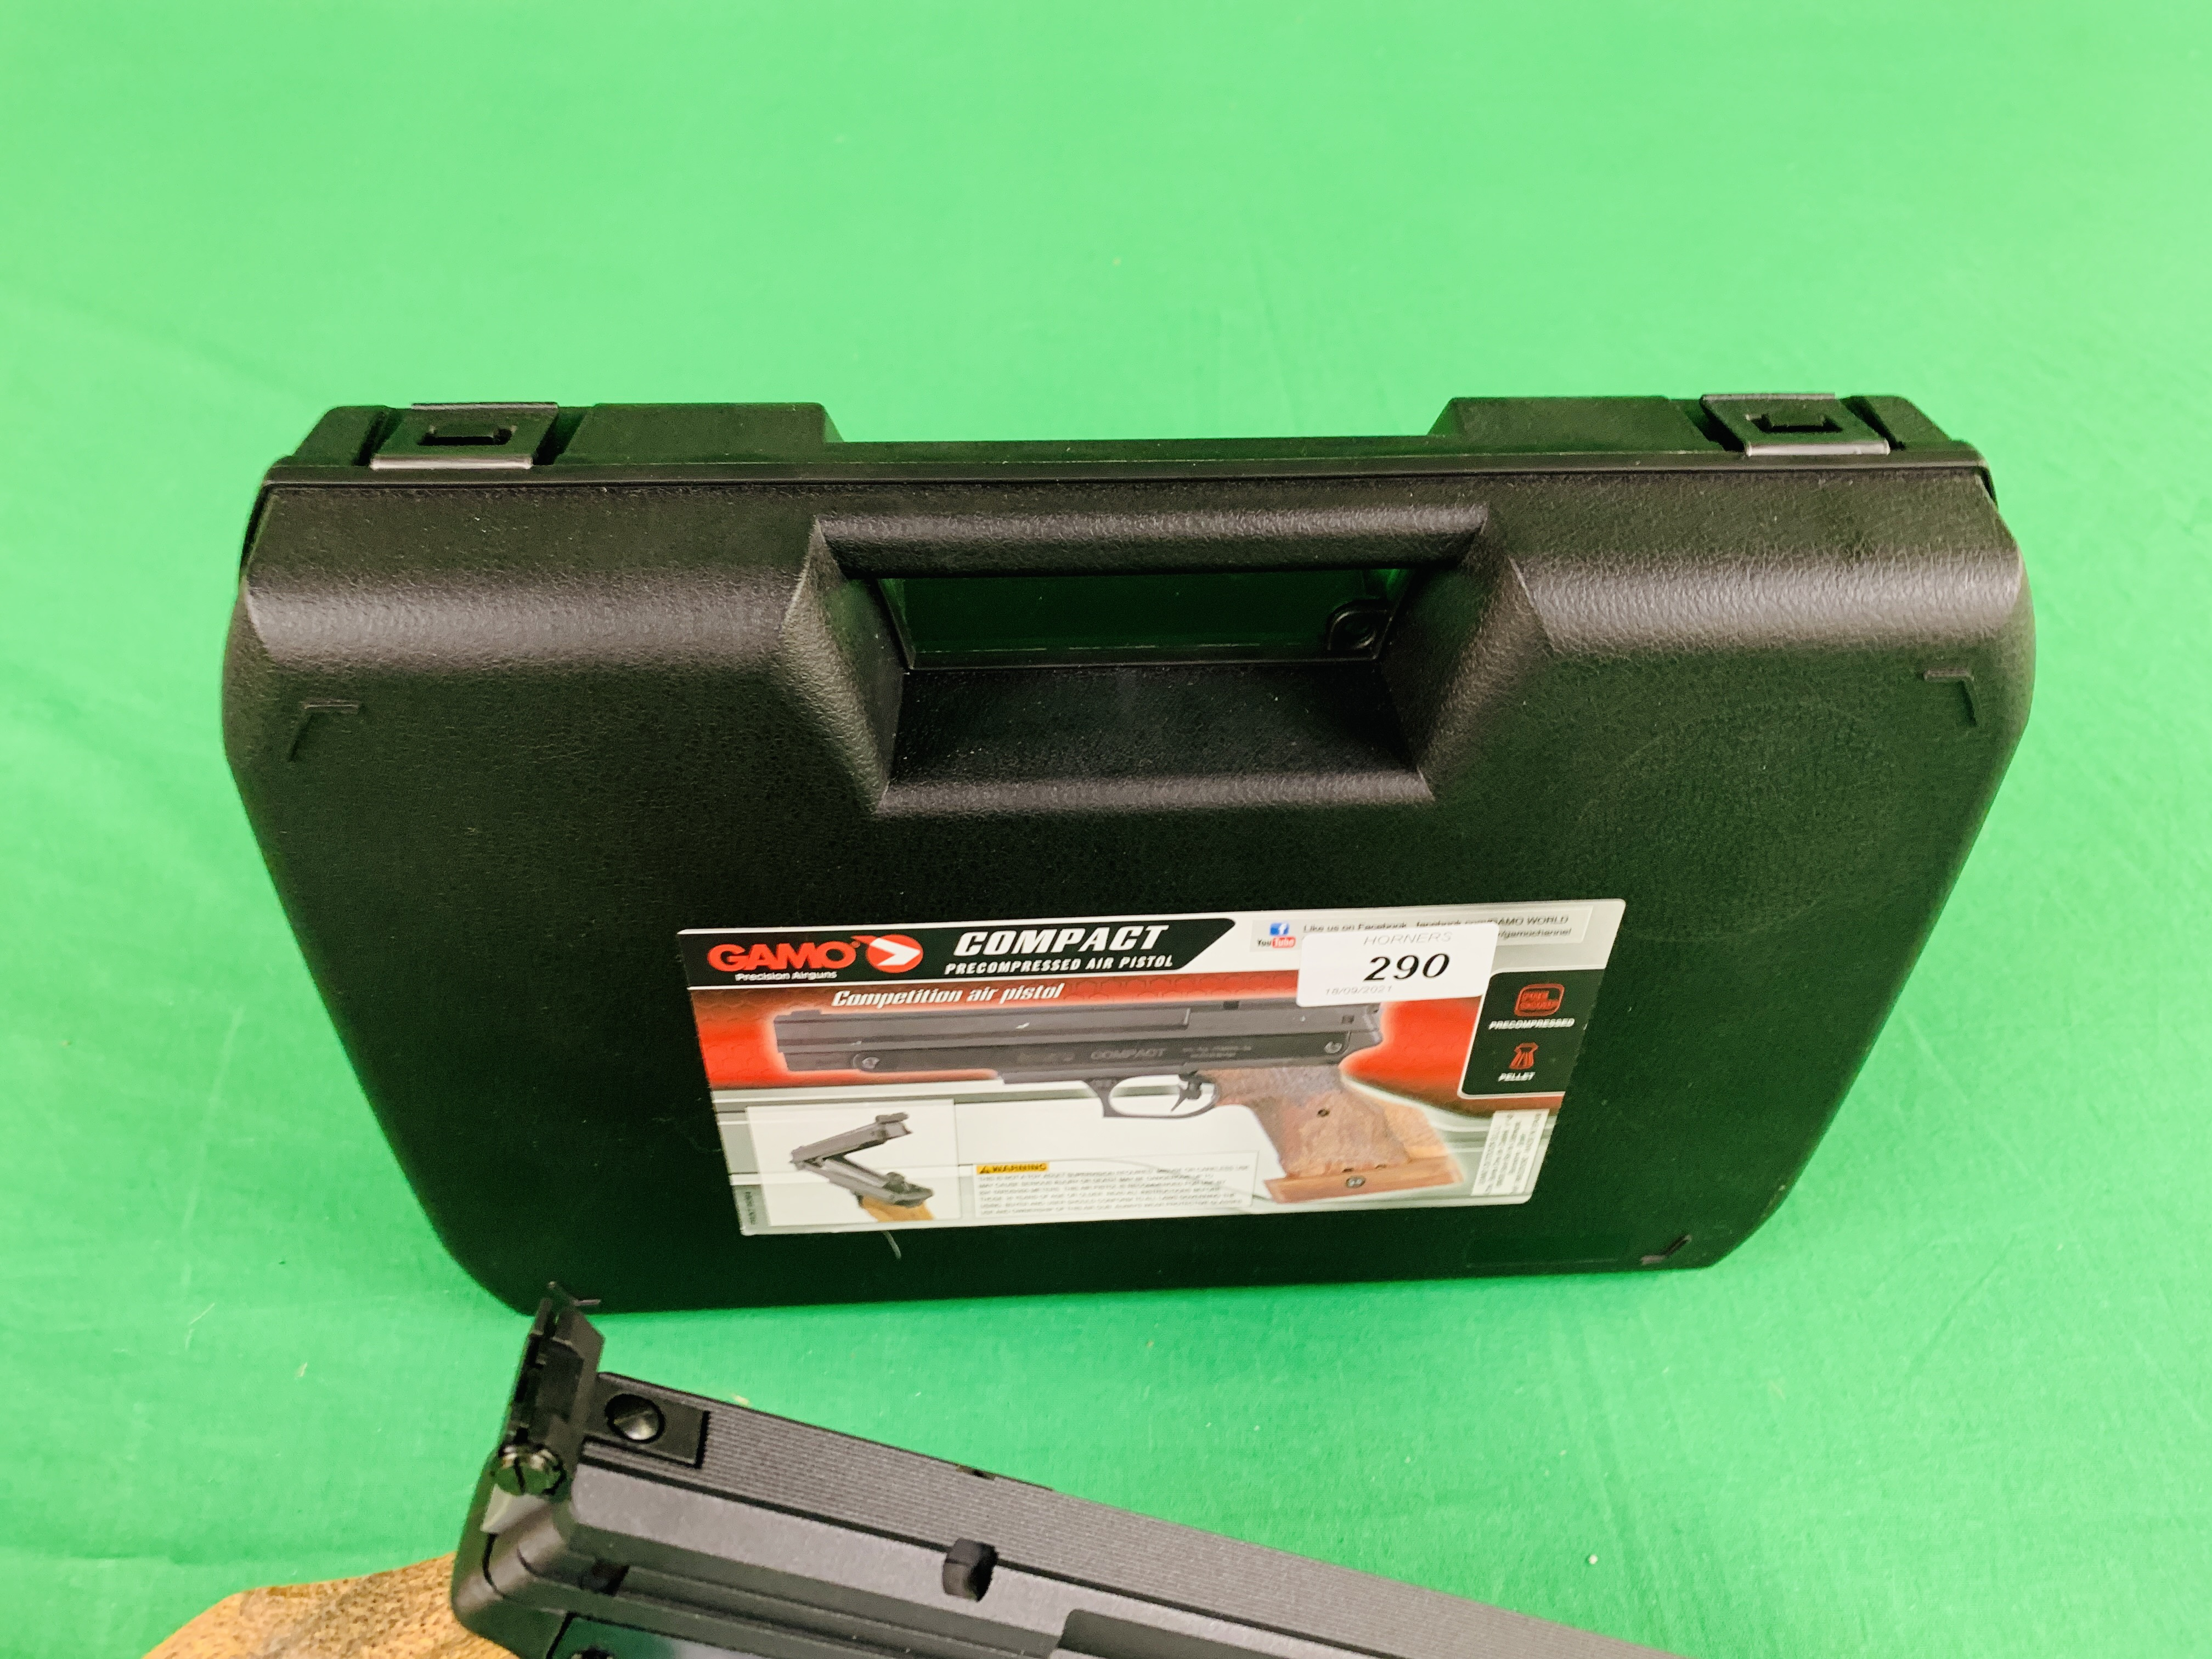 A GAMO COMPACT PRECOMRESSED COMPETITION . - Image 8 of 8